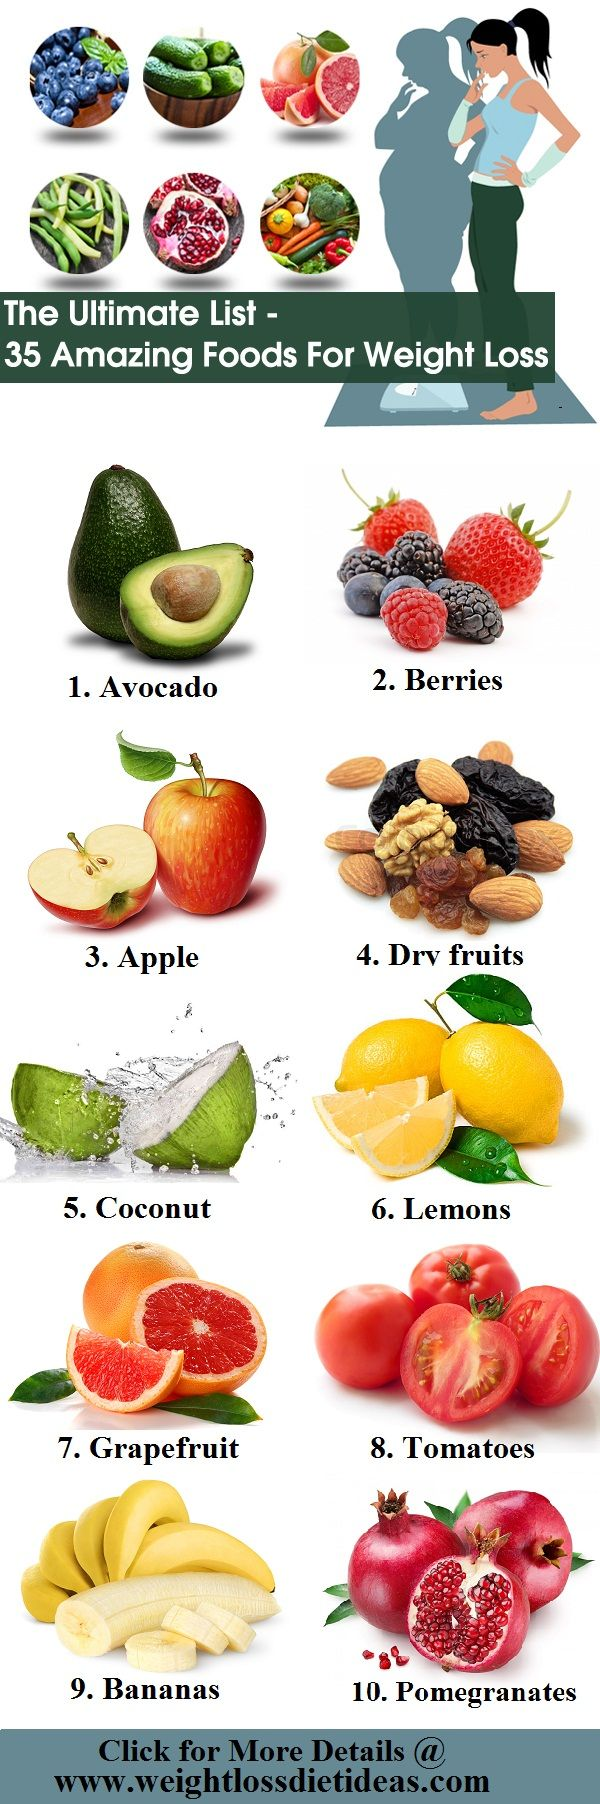 Healthy Foods For Weight Loss // In need of a detox? Get your teatox on with 10% off using our discount code 'PINTEREST10' at www.skinnymetea.com